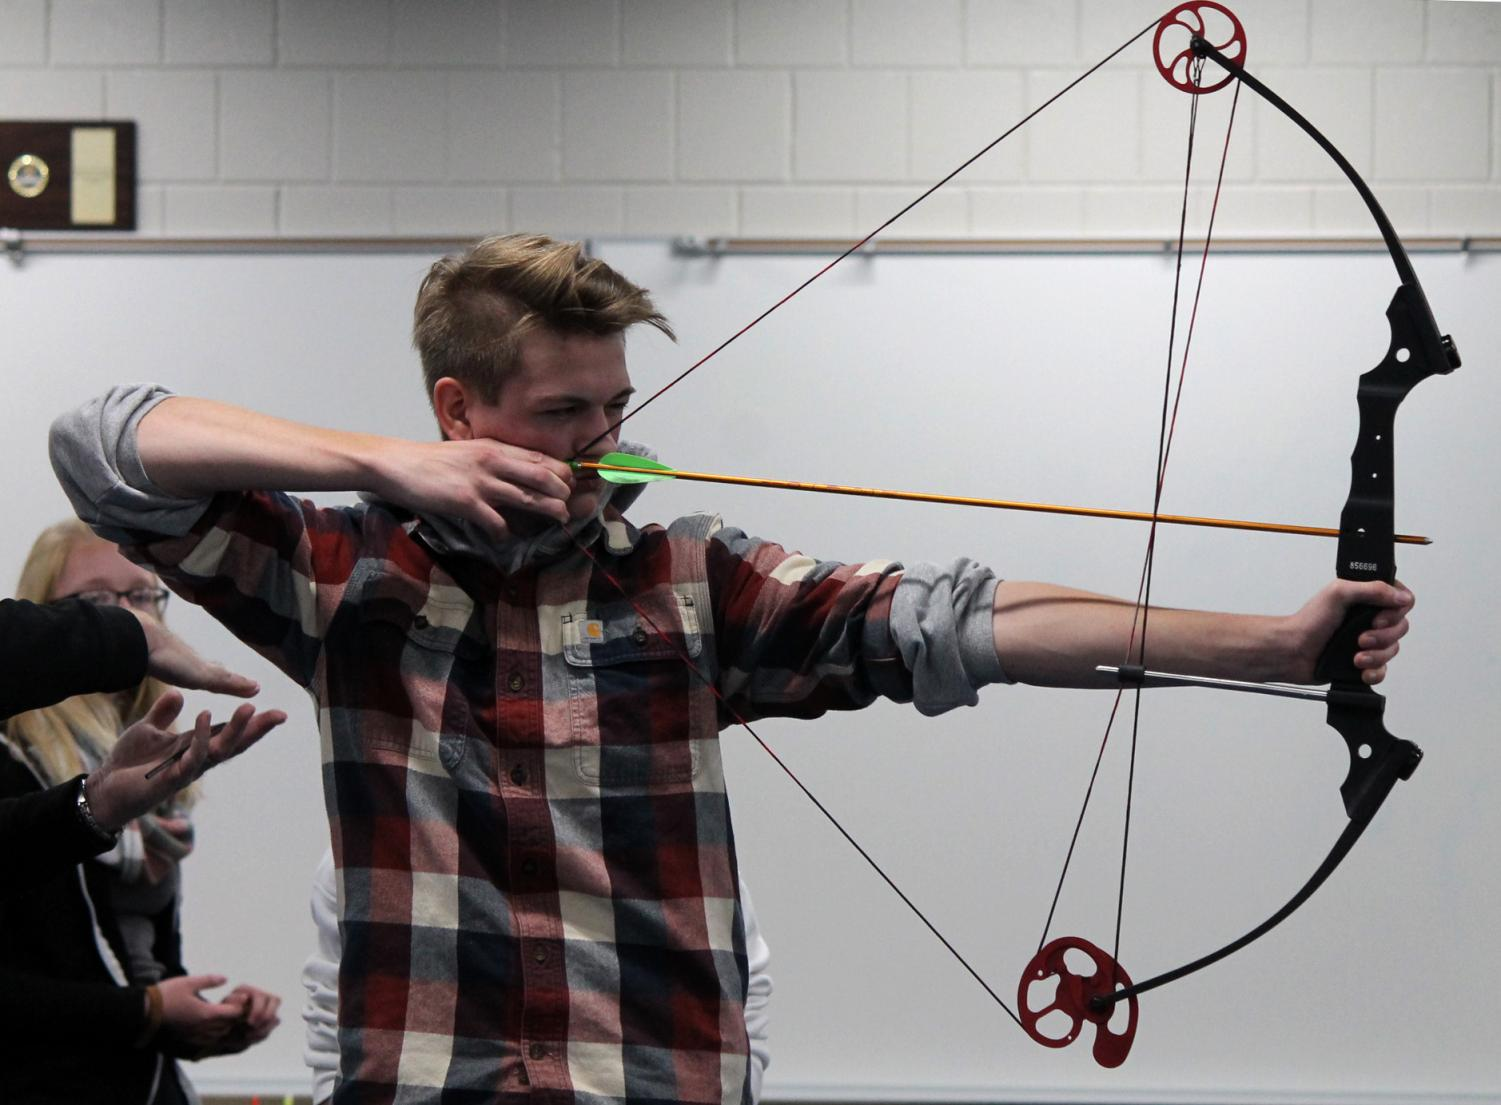 Senior Blaise Strom aims with his bow at archery practice Nov. 8. Strom has been shooting after he got into it from his love of the outdoors.